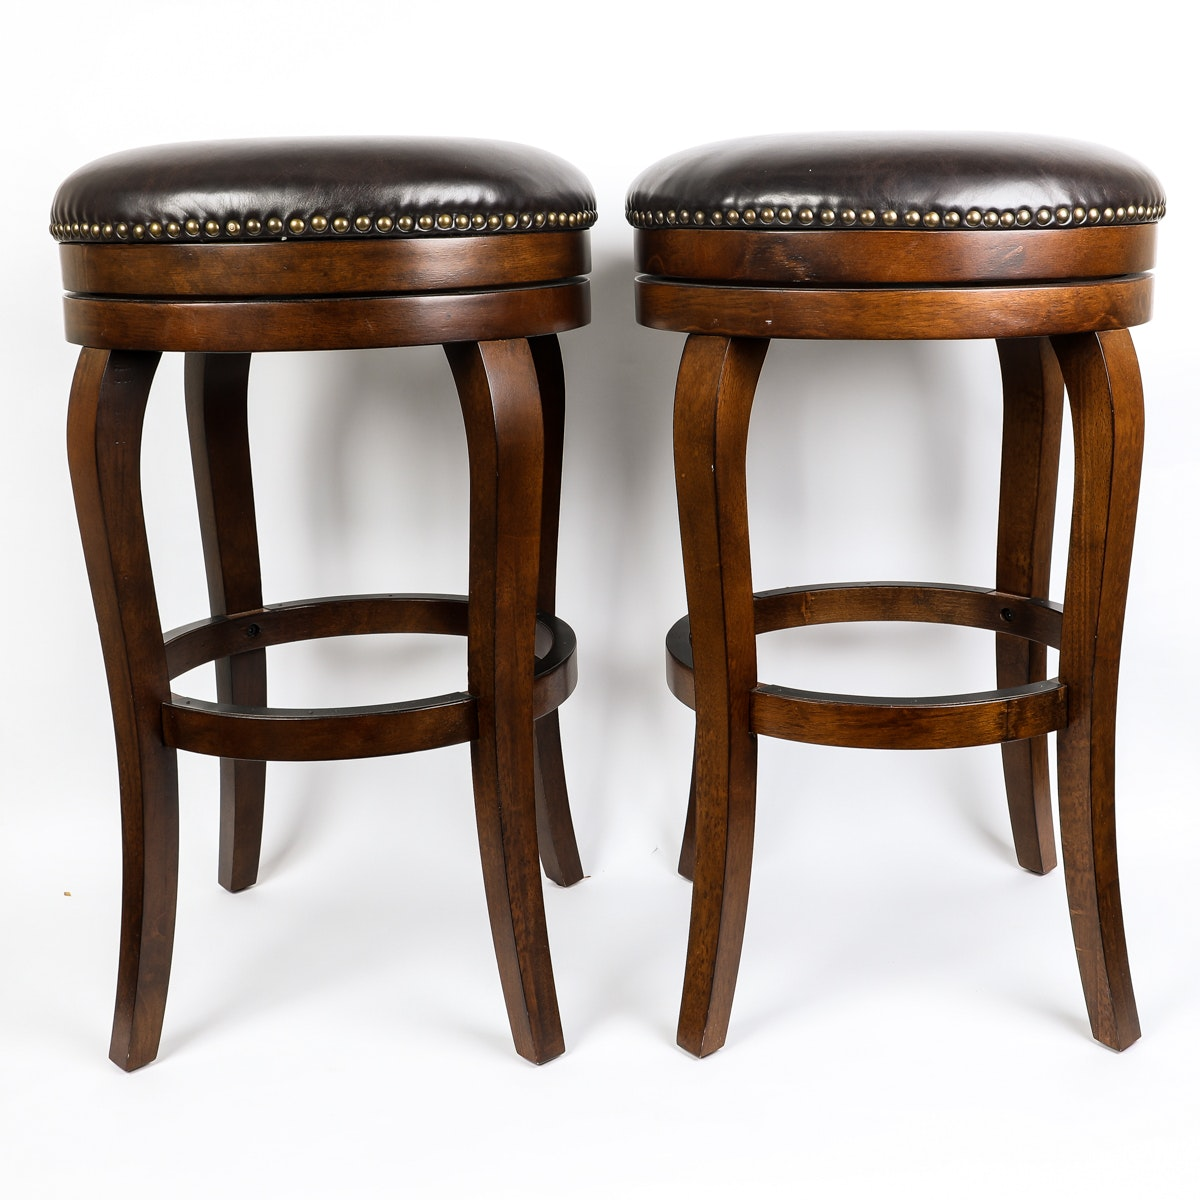 Two Wood and Leather Bar Stools